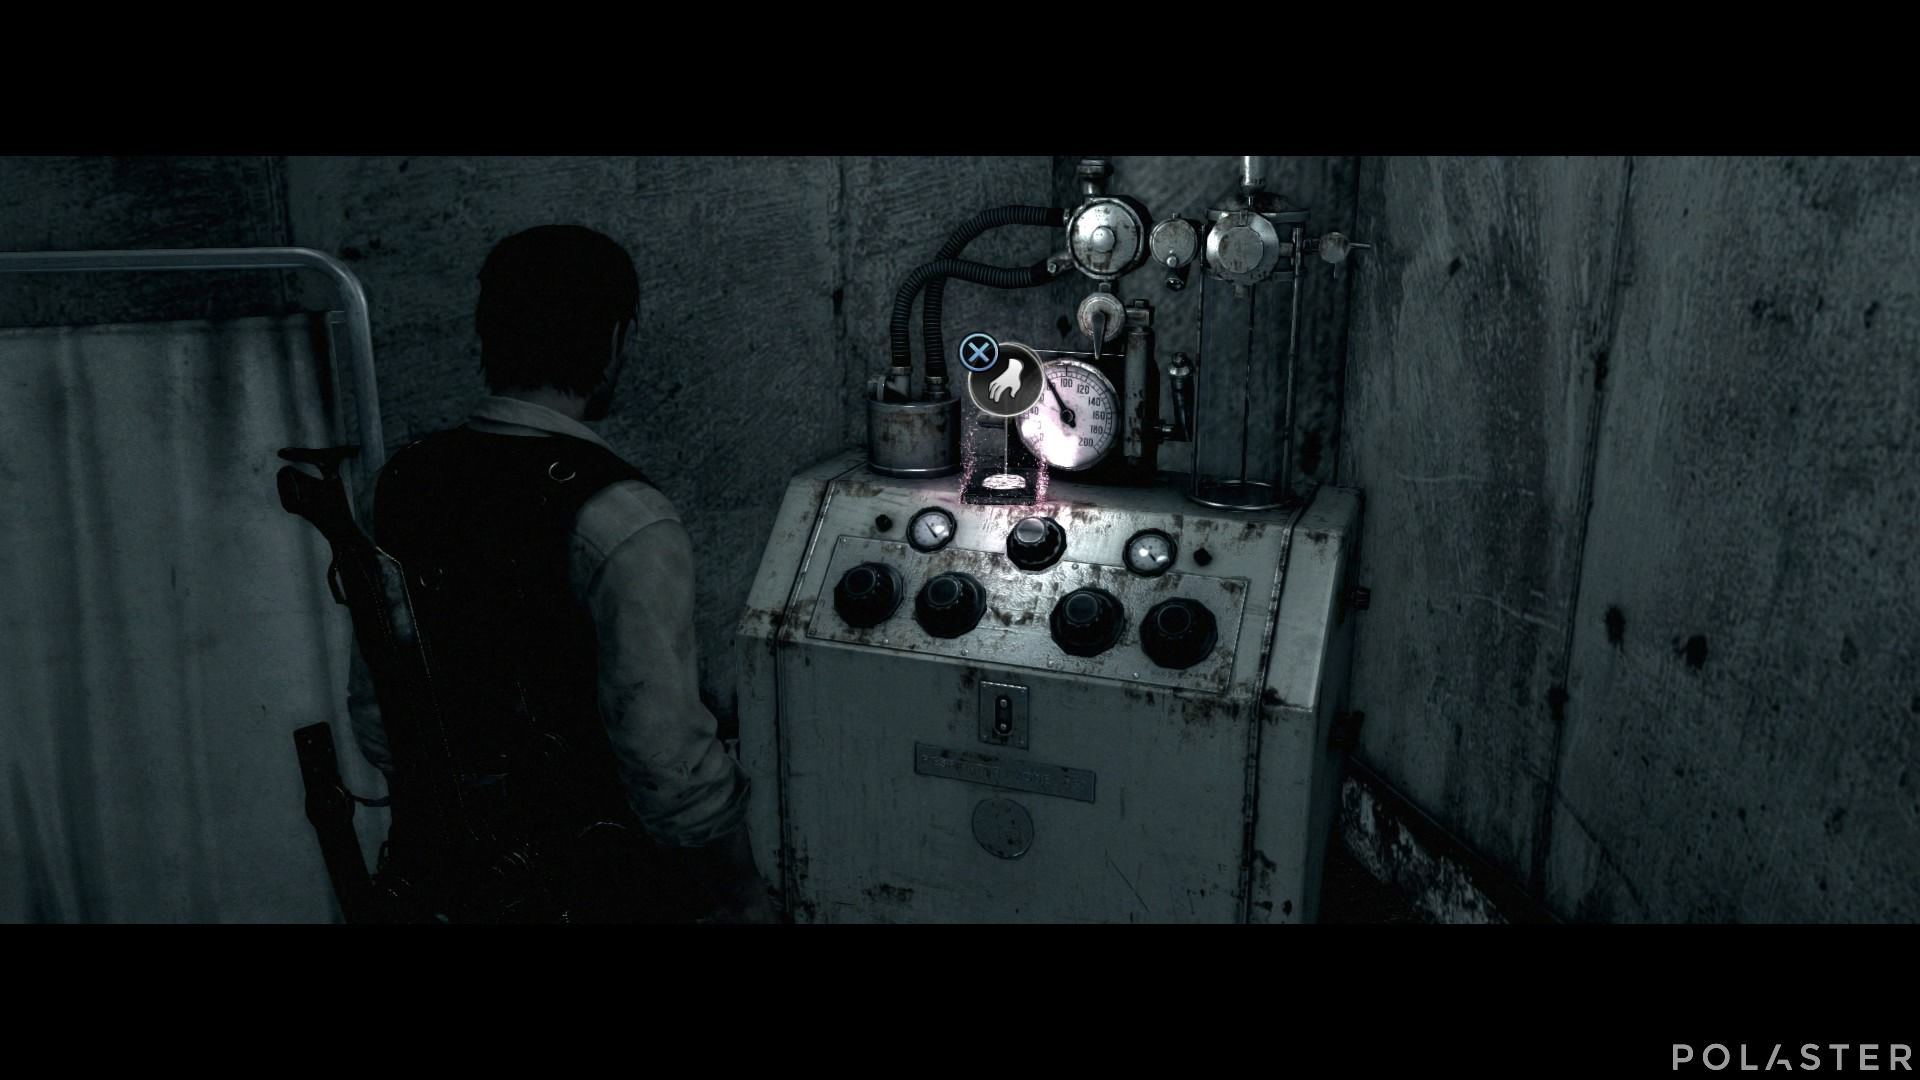 The Evil Within - Coleccionables - Documento personal: Entrada del diario - Febrero de 2012